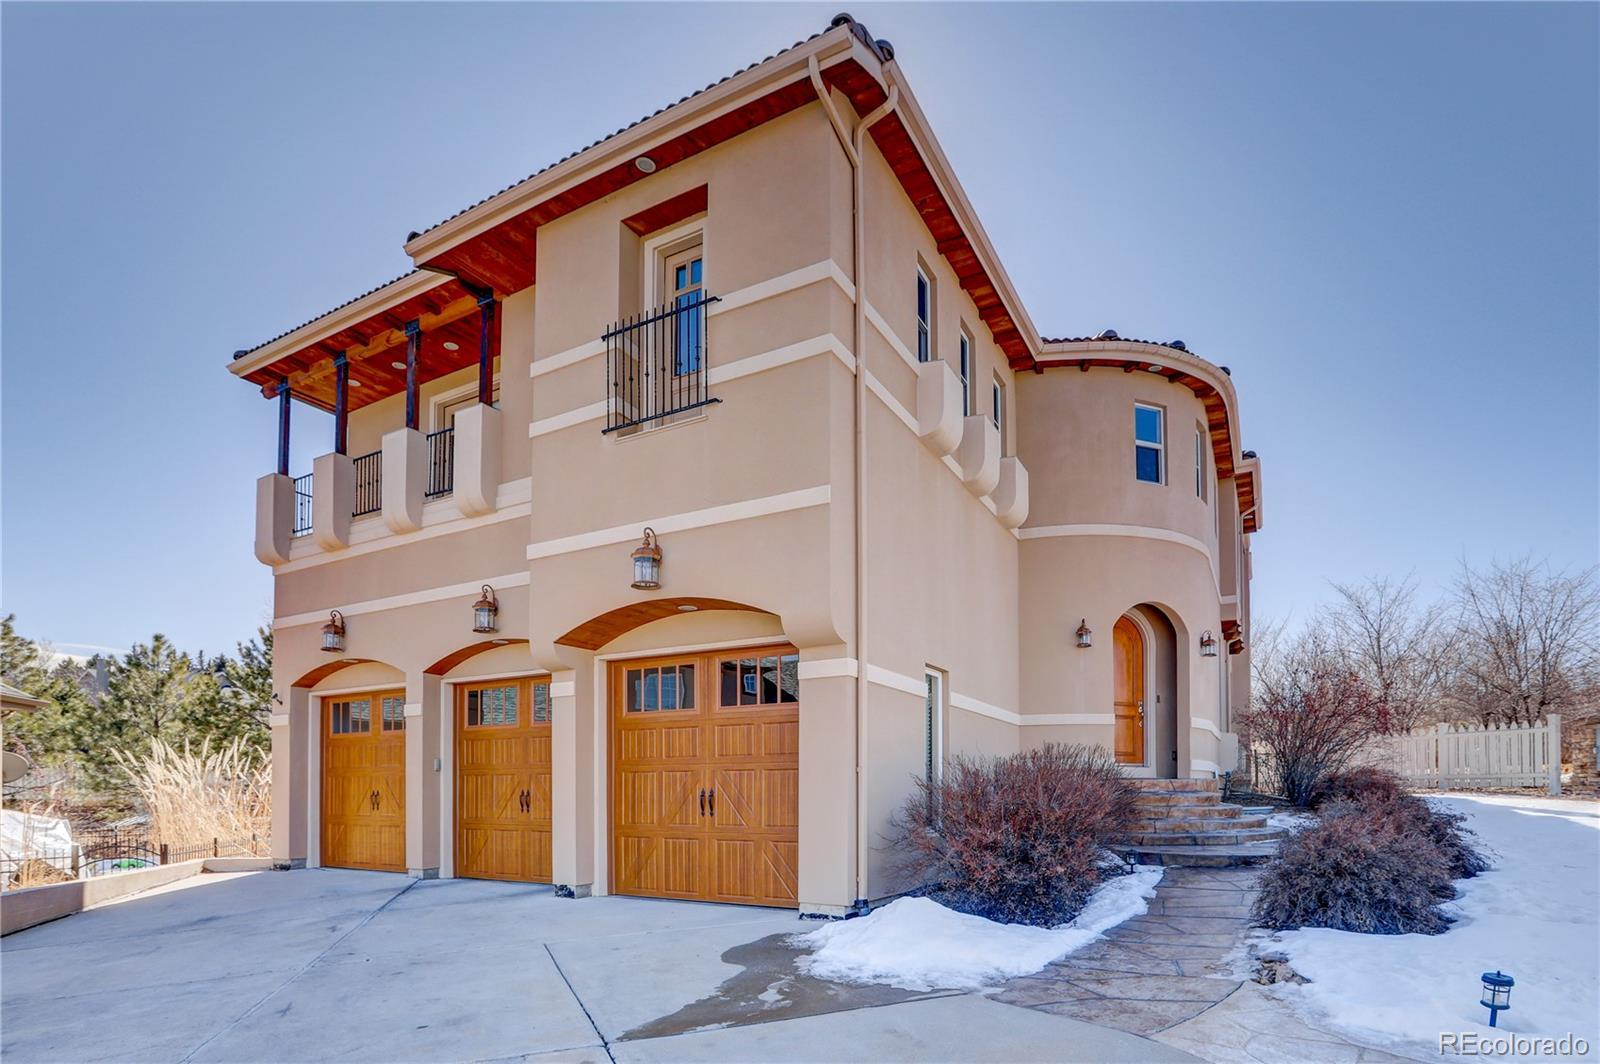 10952 W Indore Drive, Littleton, CO 80127 - #: 2485195